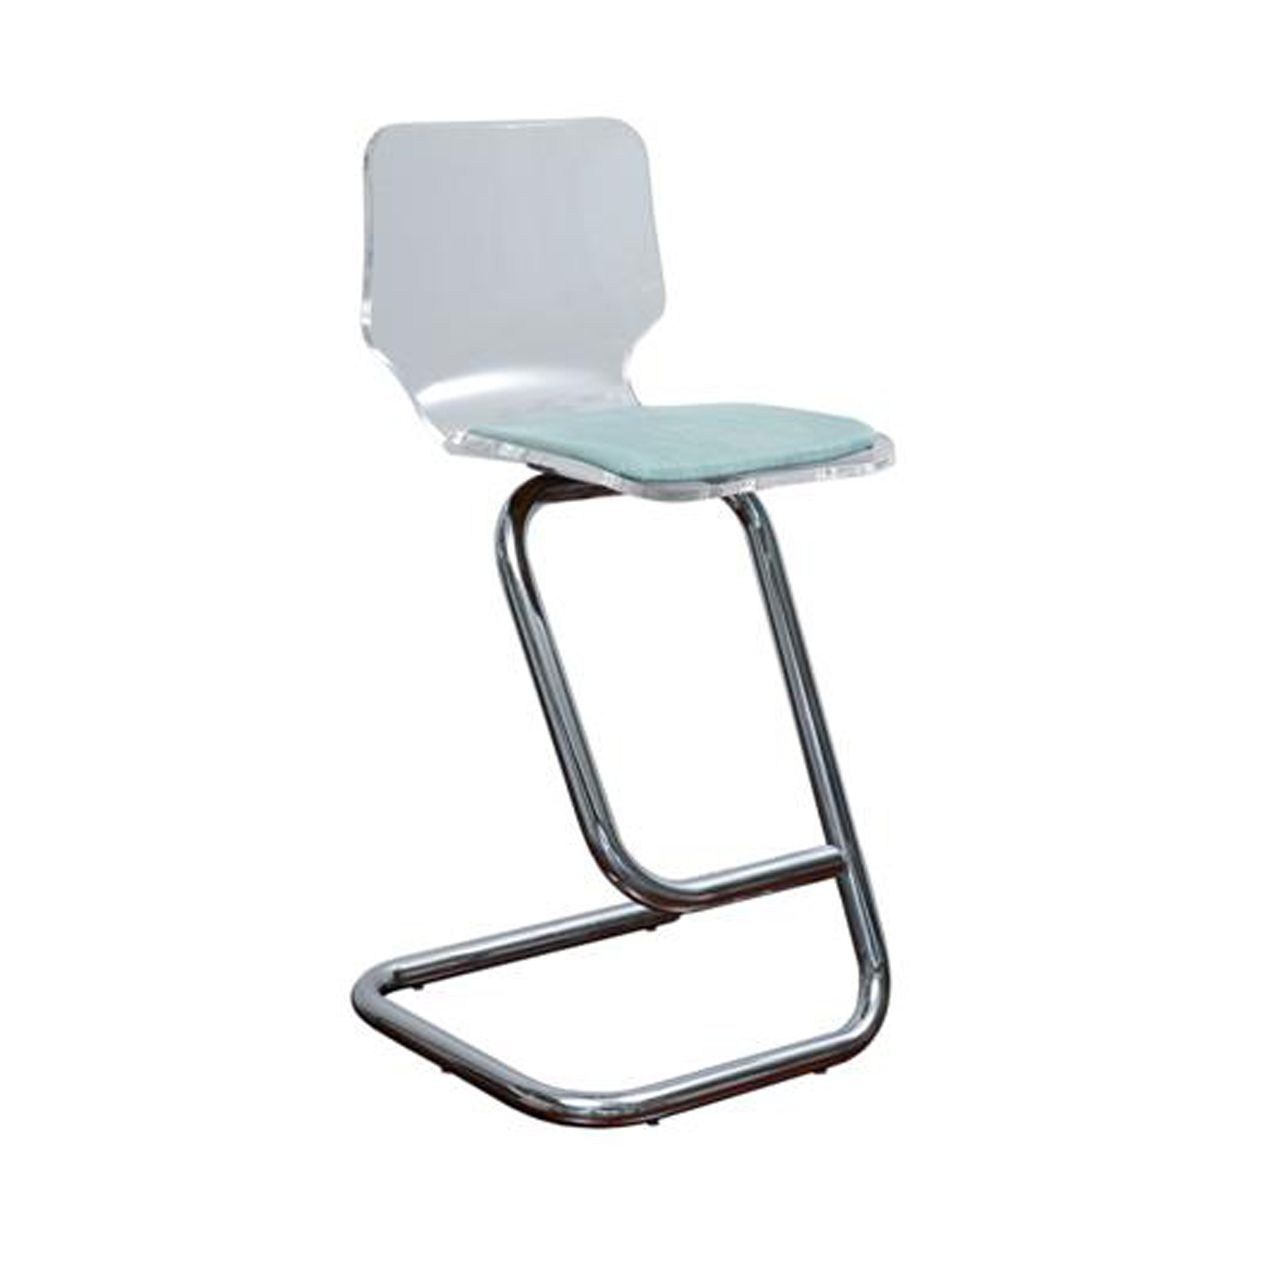 lucite chrome barstools used in the kitchen with